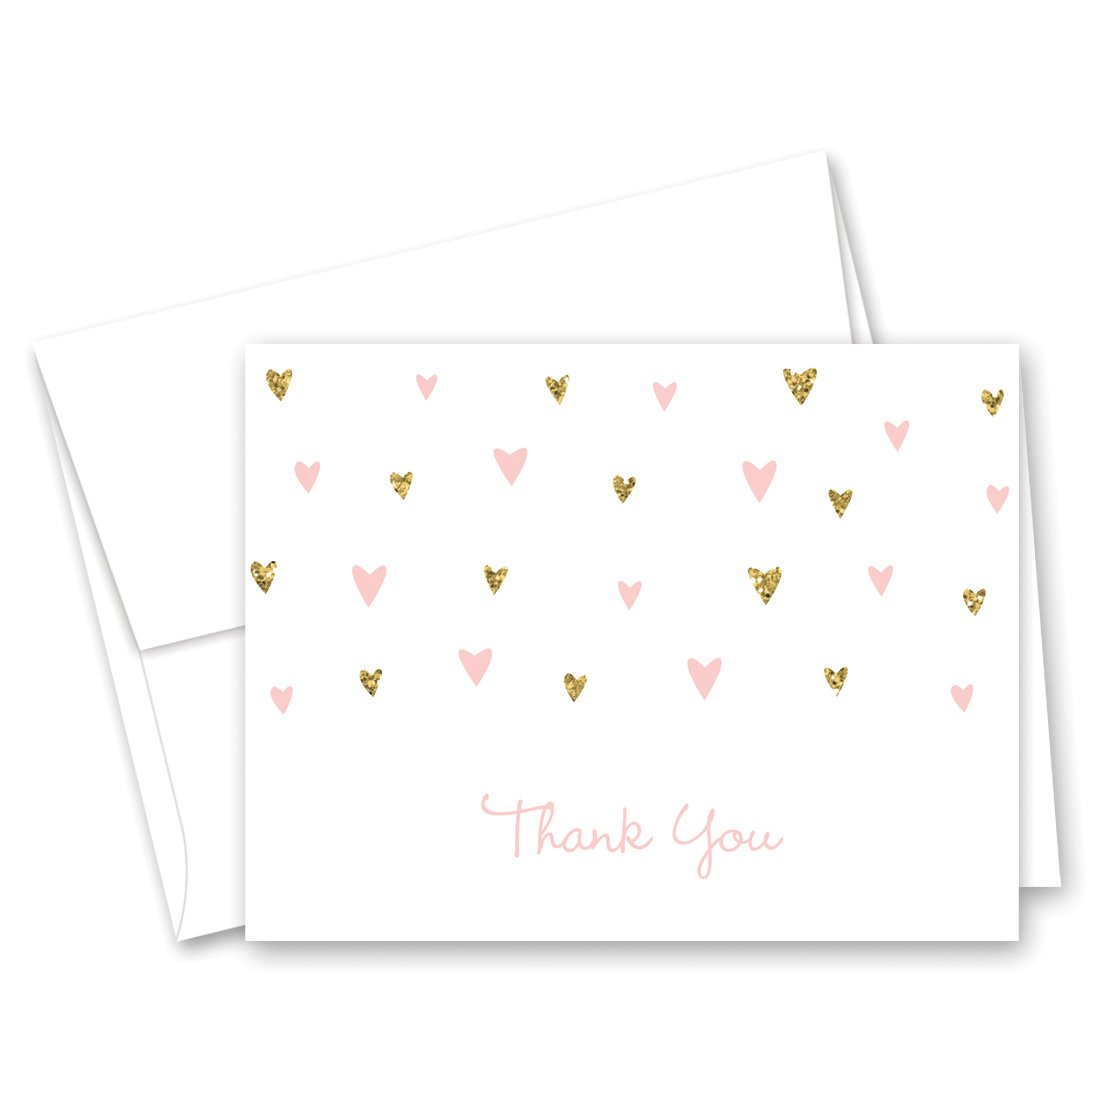 MyExpression.com 50 Cnt Pink Faux Glitter Hearts Baby Shower Thank You Cards by MyExpression.com (Image #3)